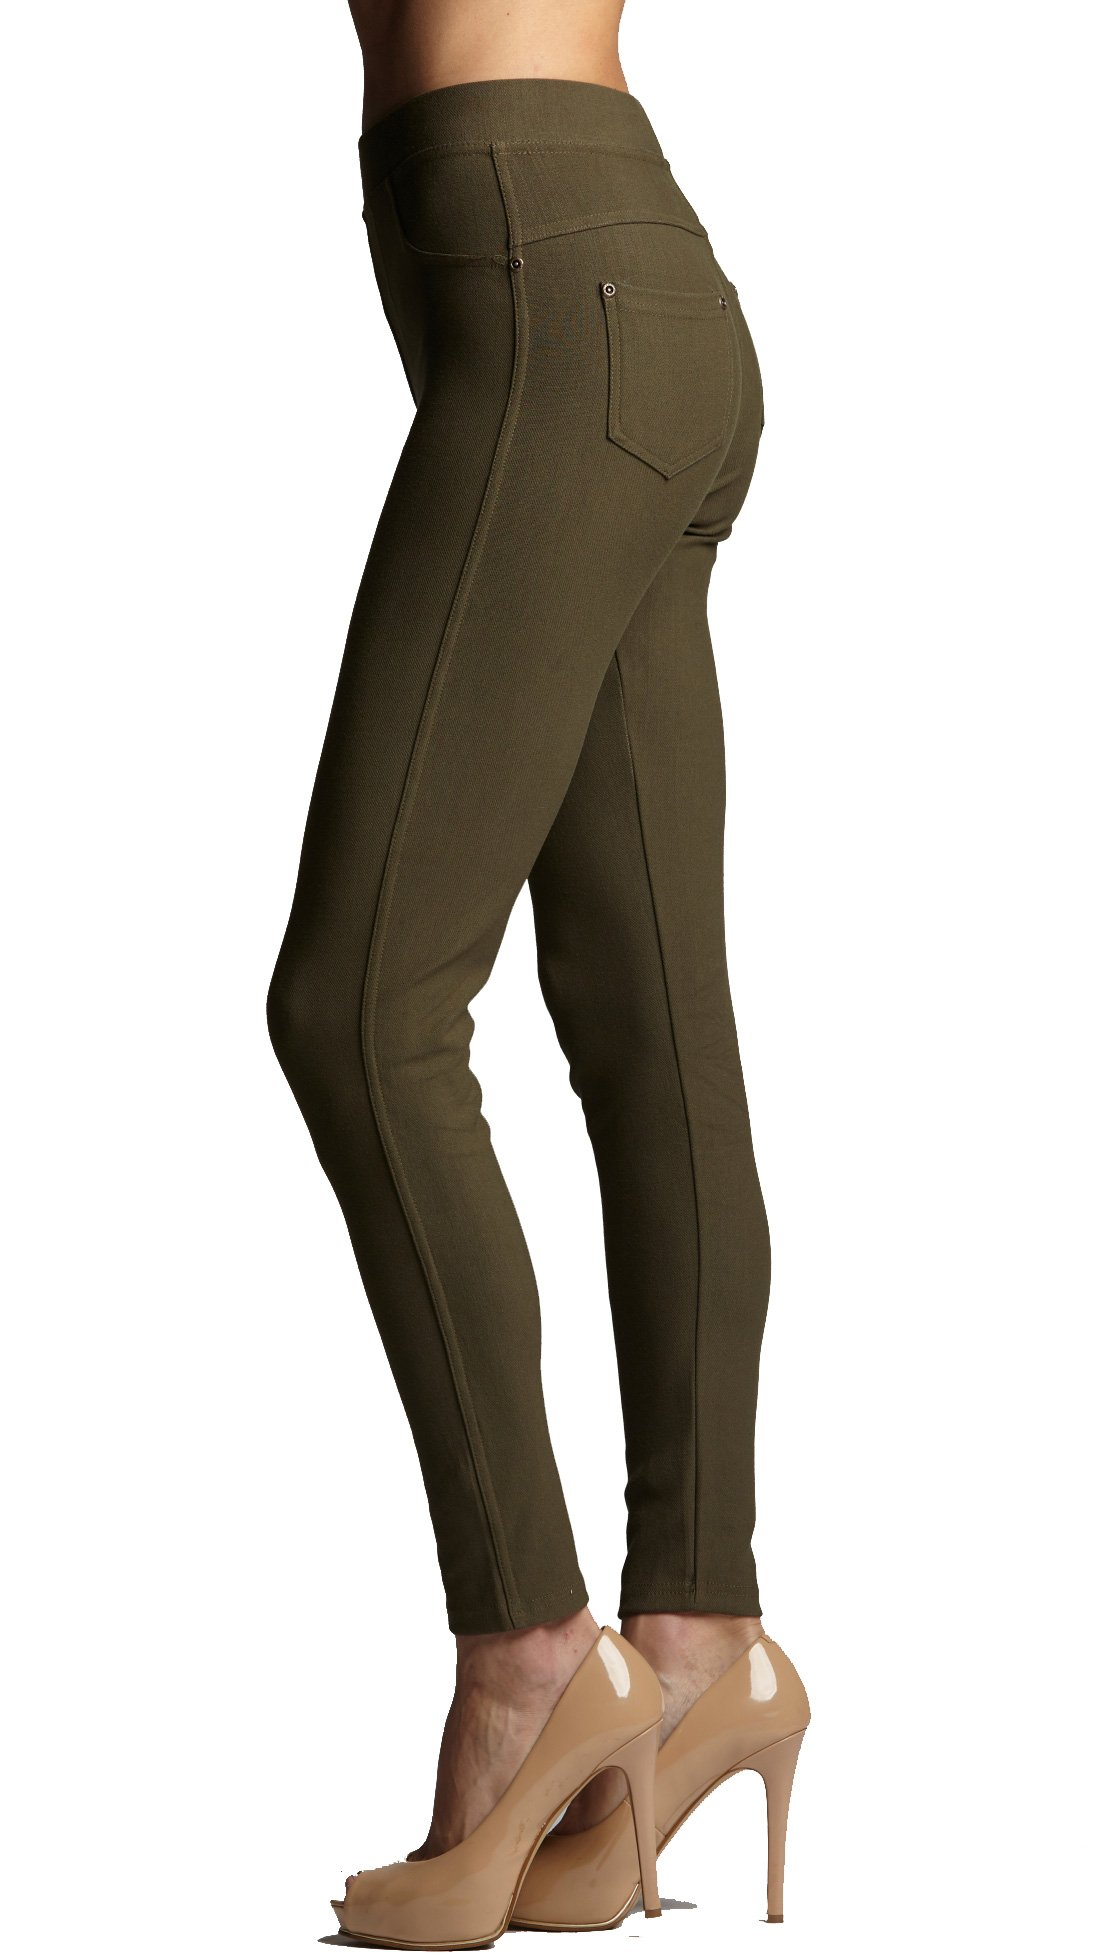 Conceited Premium Soft Jeggings Denim Leggings in 7 Colors - Regular and Plus Sizes by (Large/X-Large, A Olive)